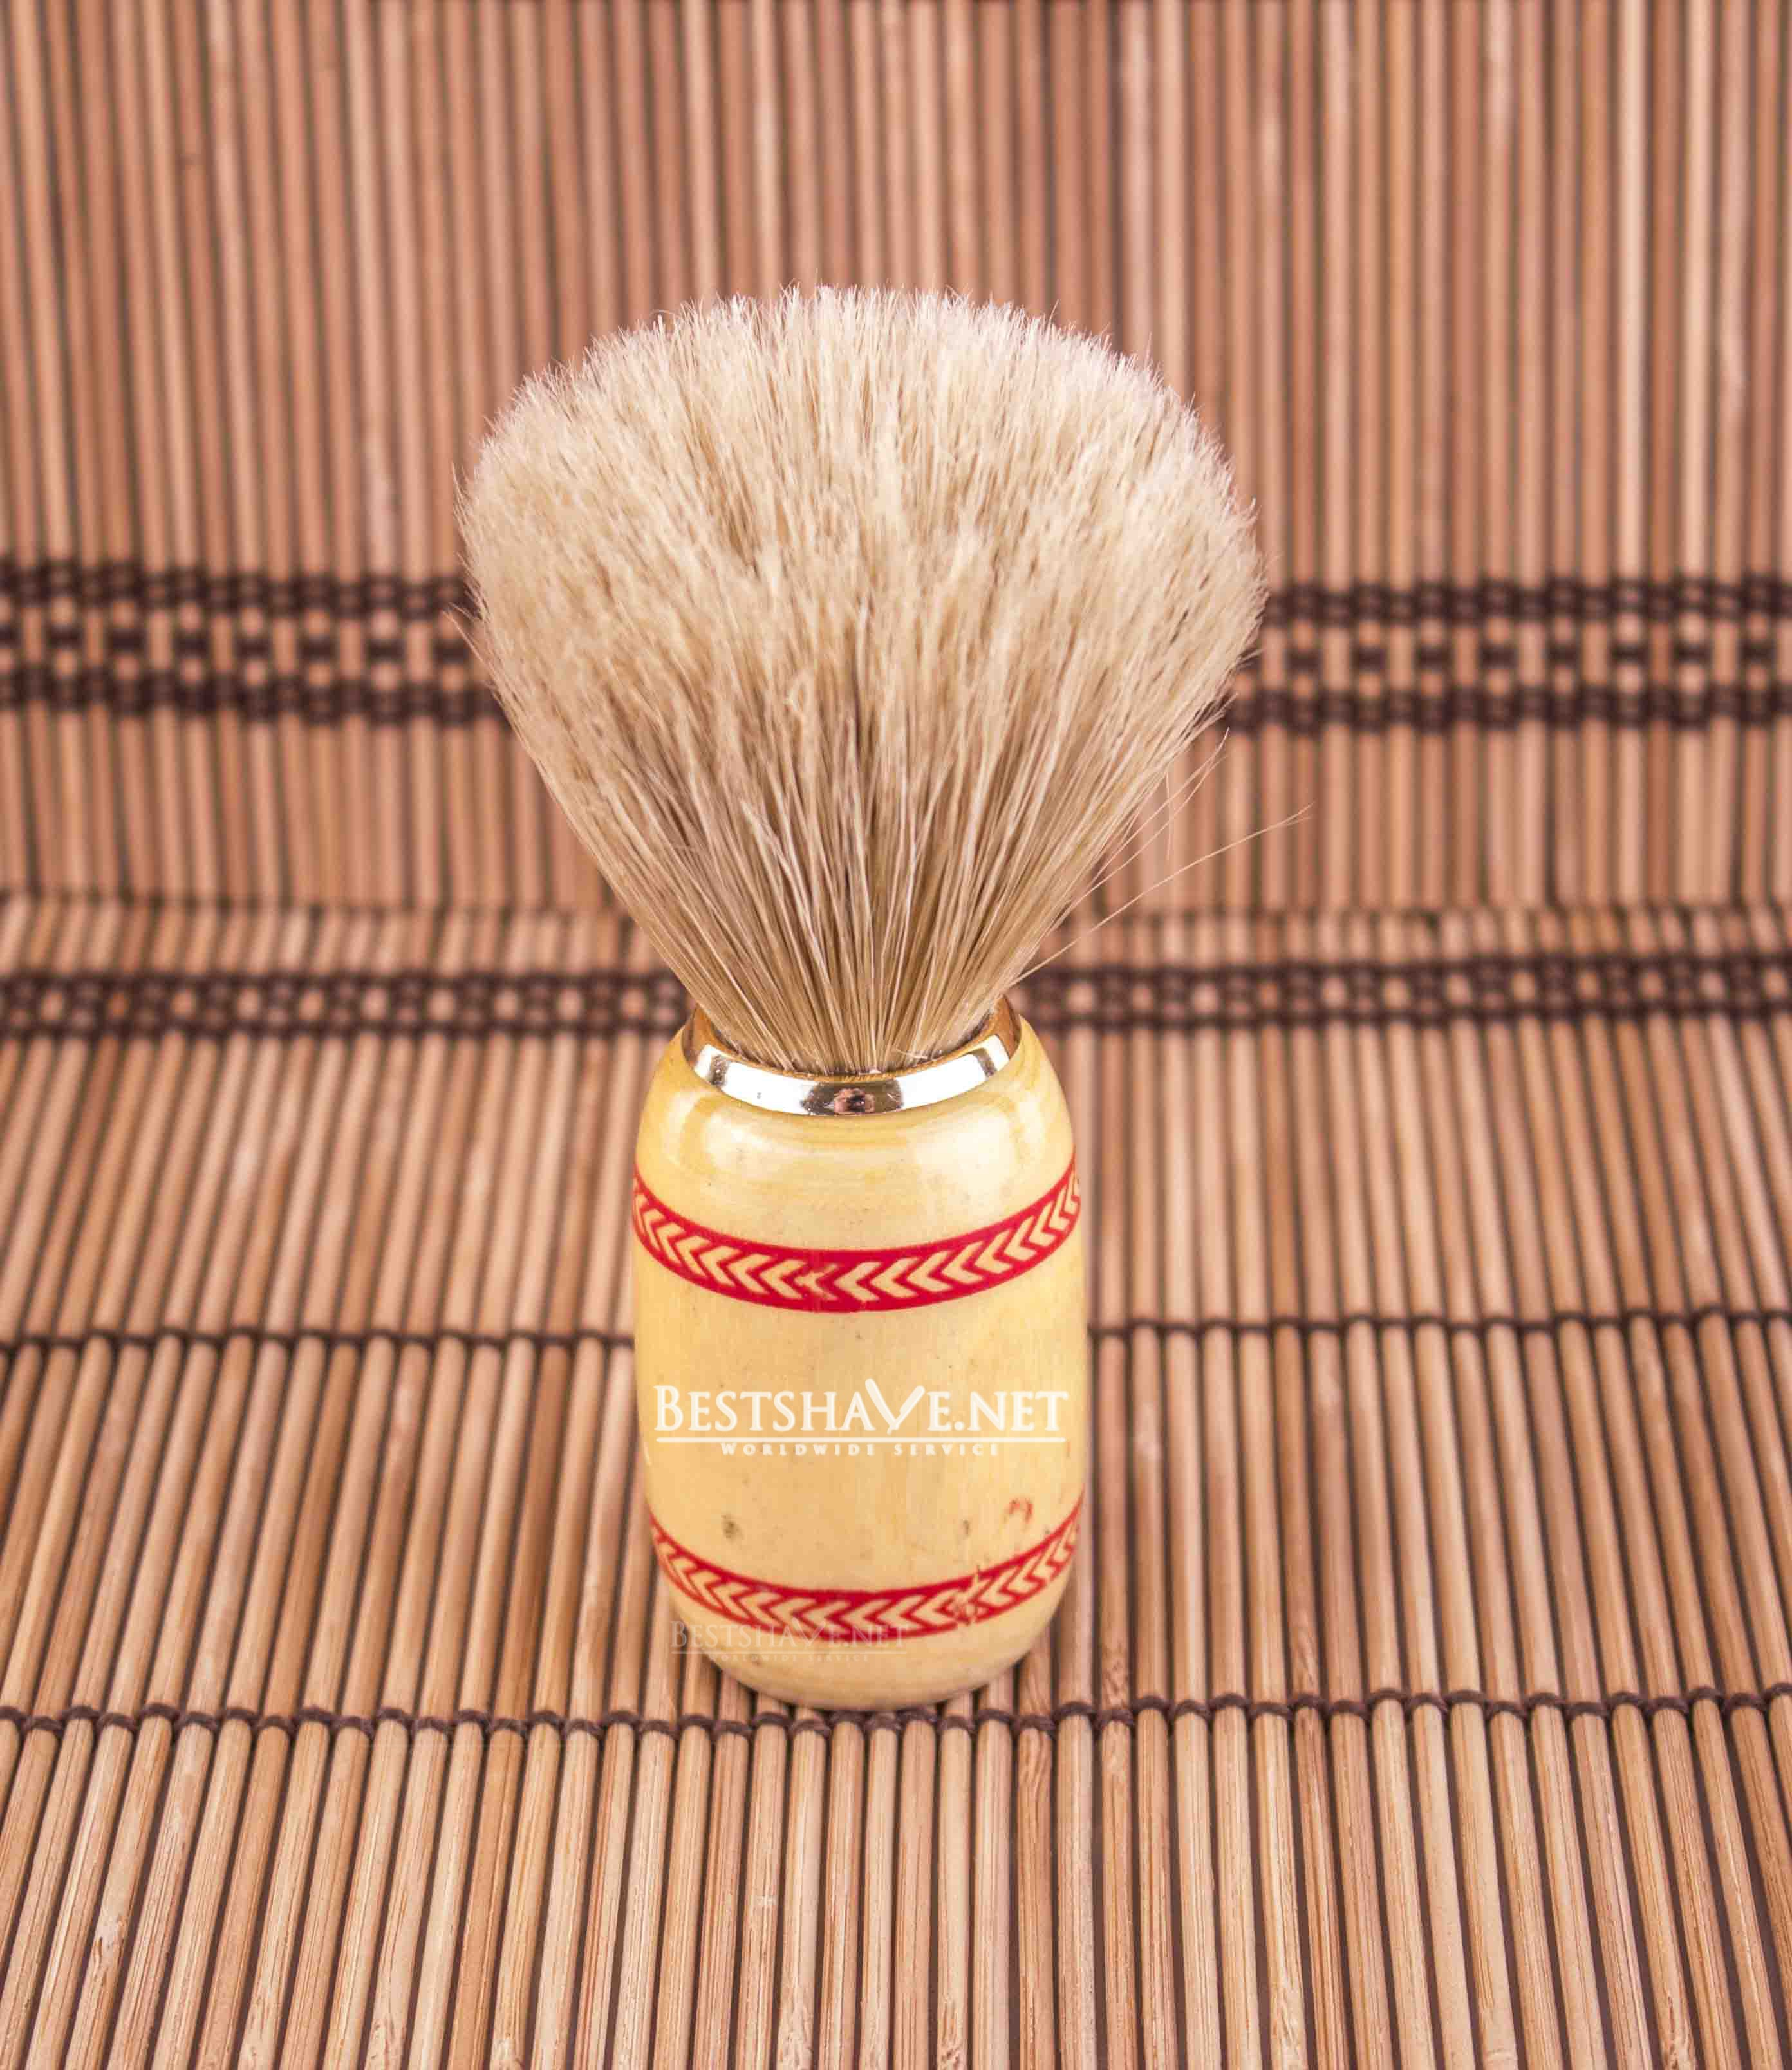 Bestshave Shaving Brushes No: 1